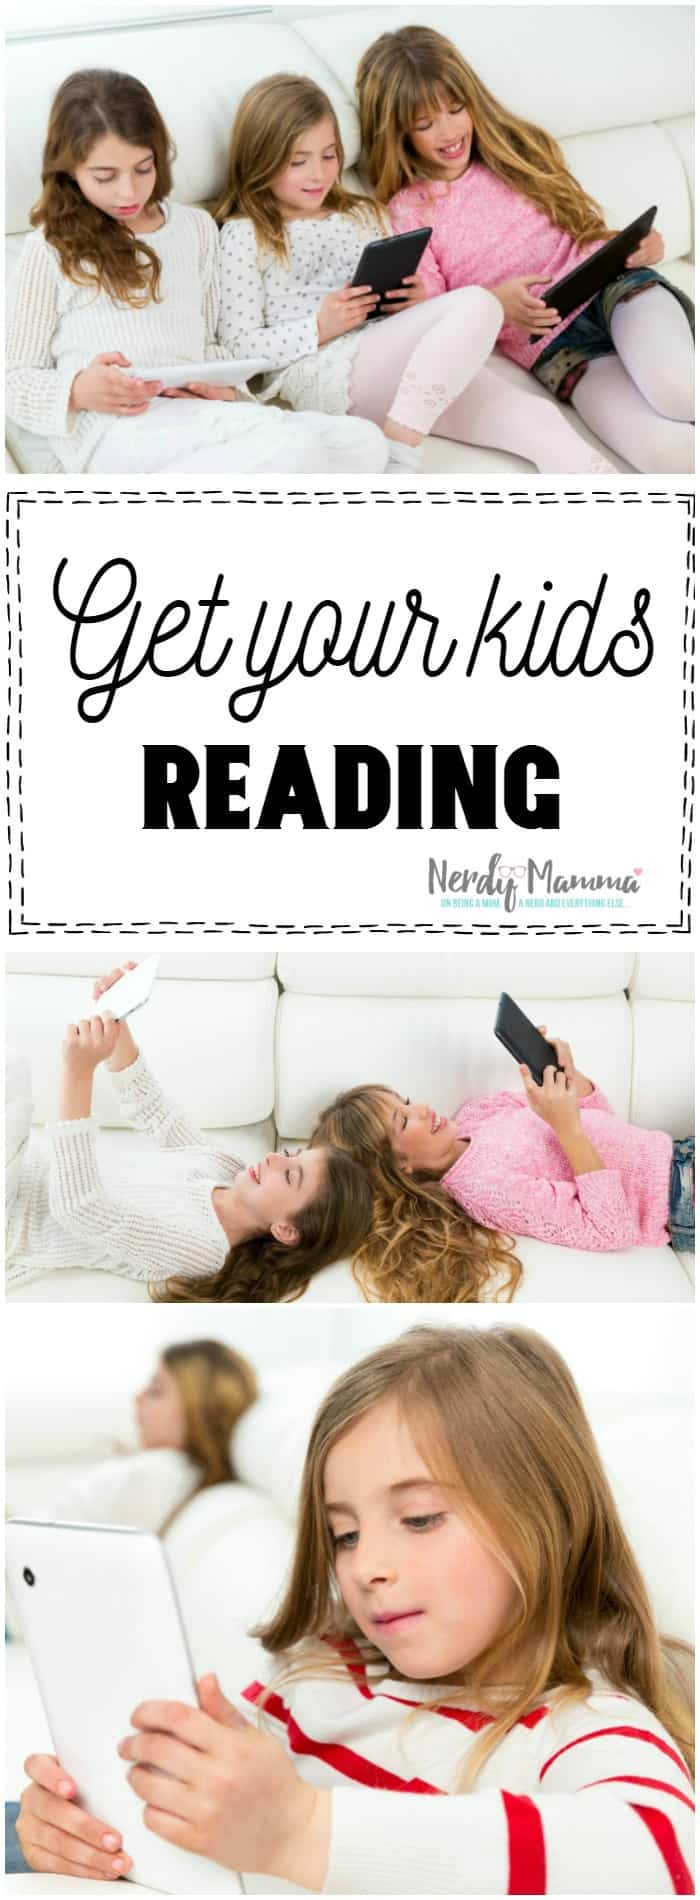 This is a great way to get my kids to start reading. They're already on the tablet anyway.